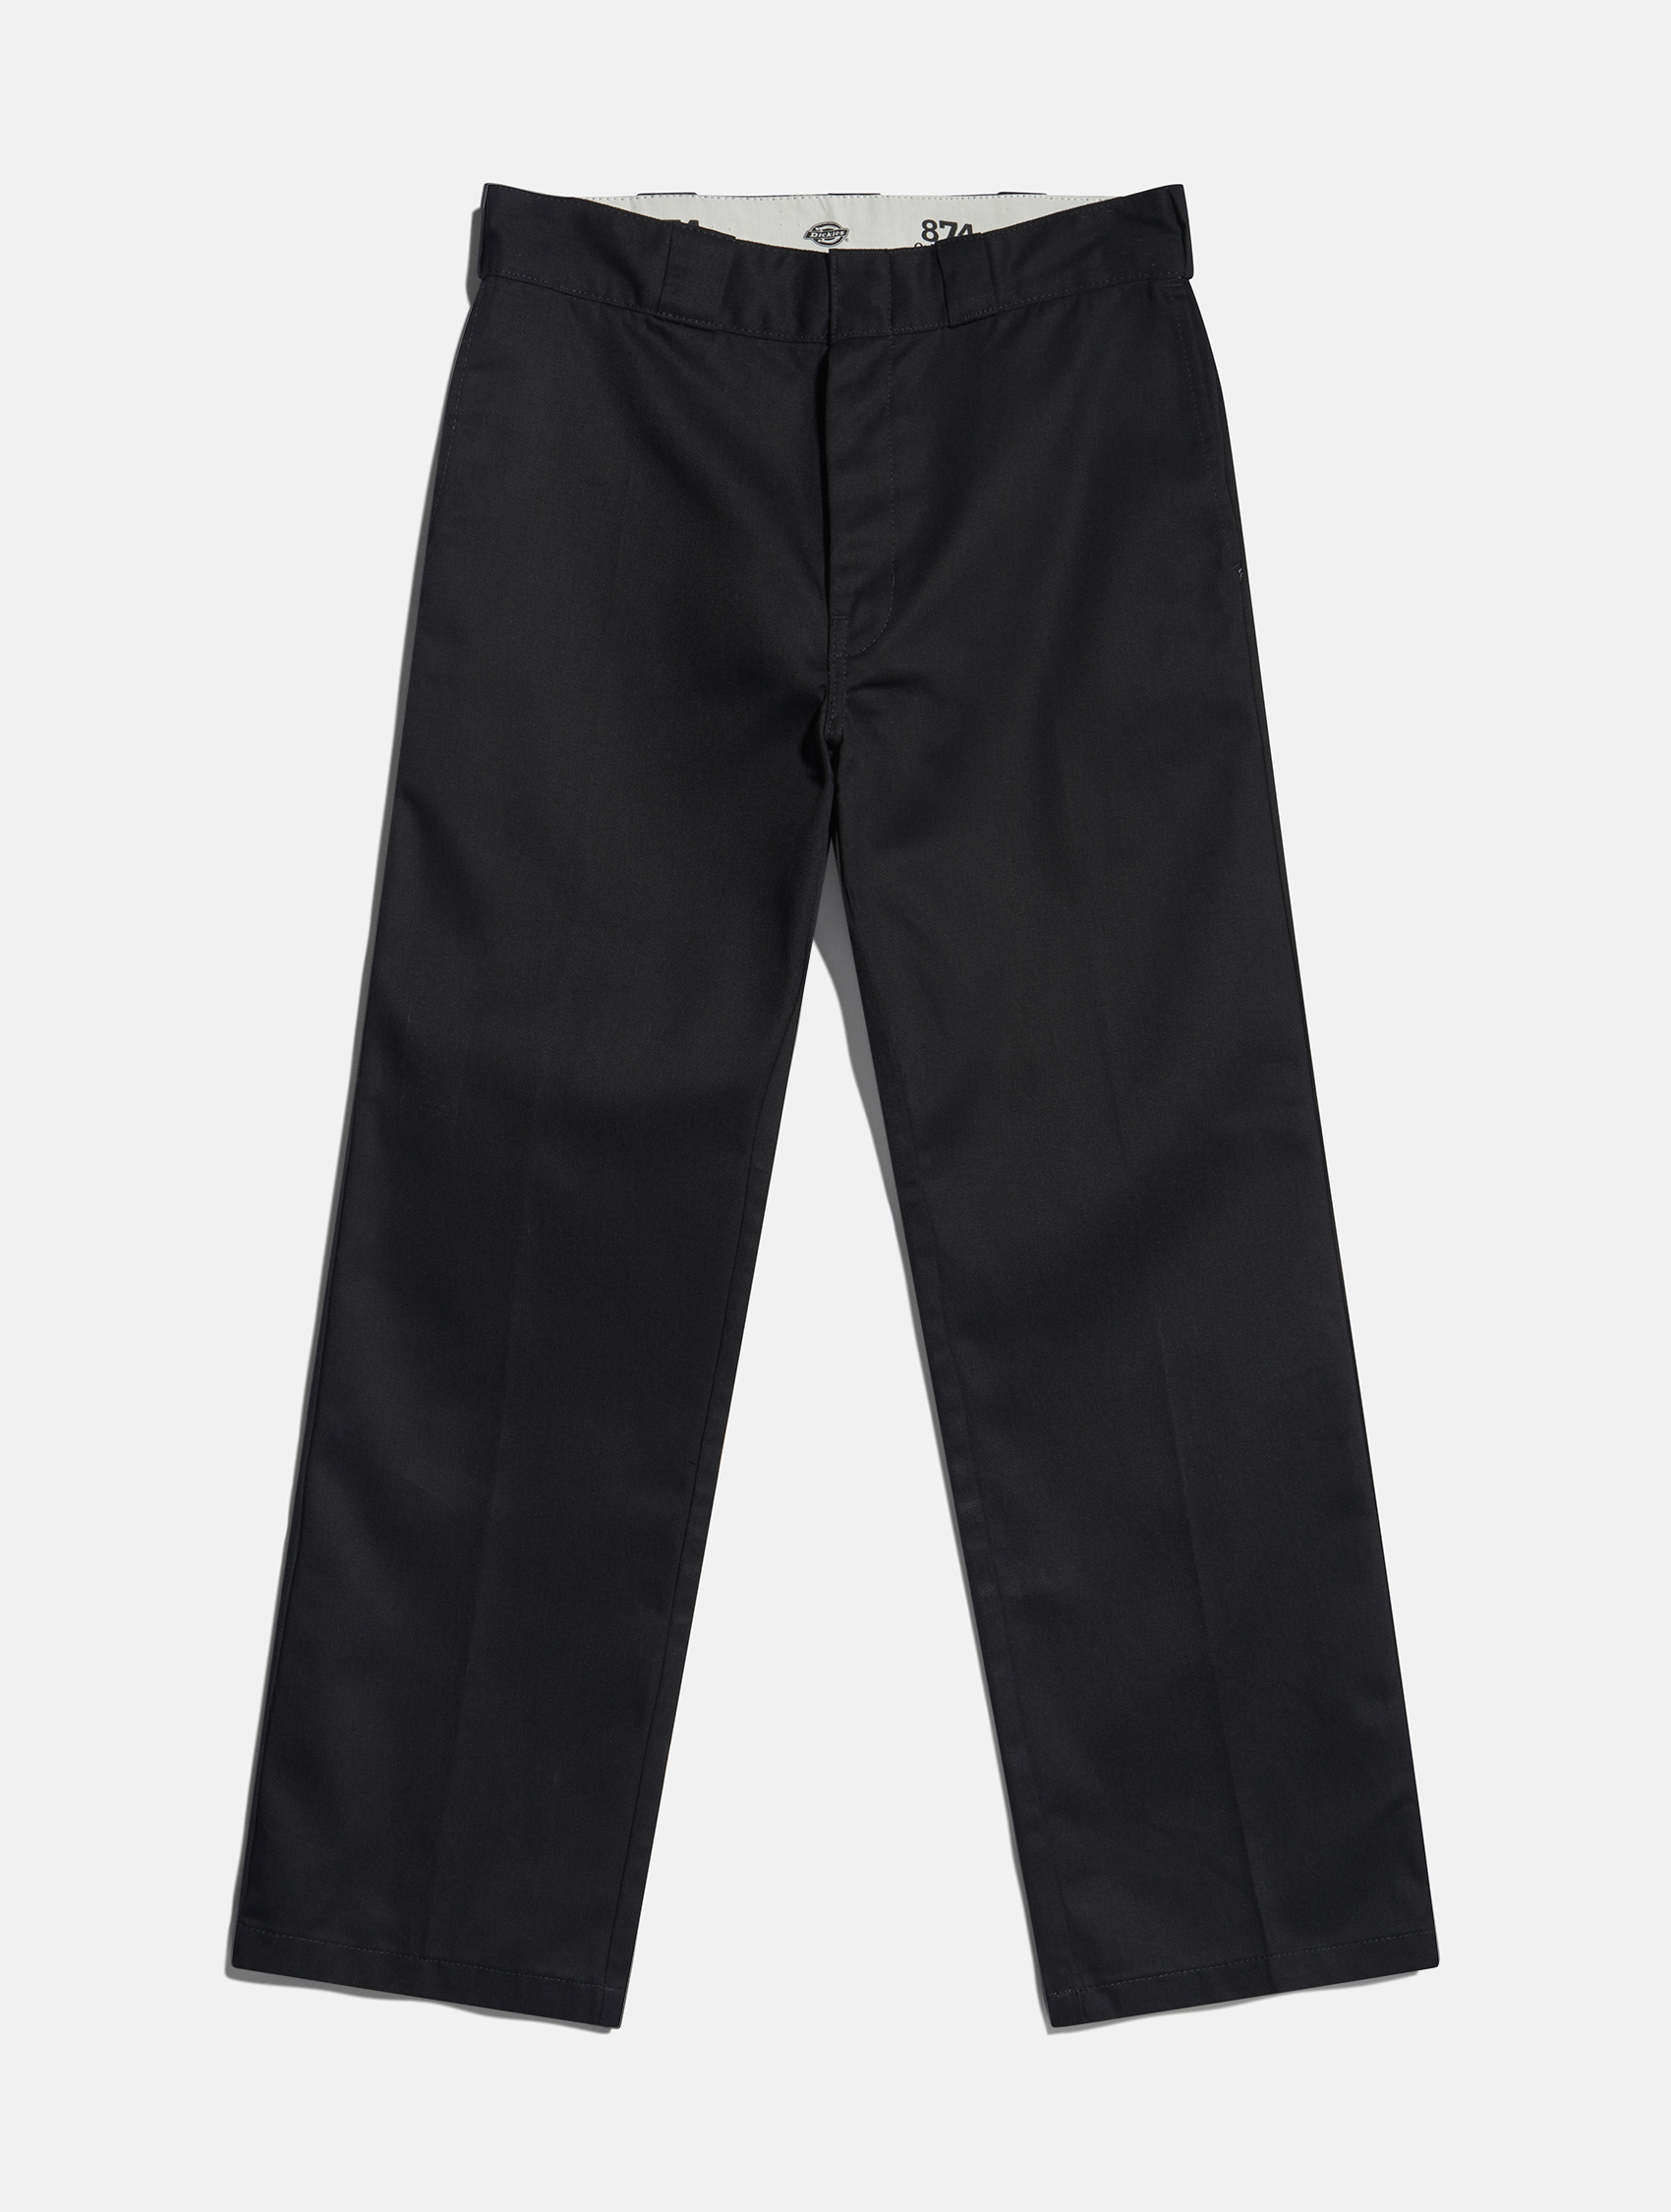 black straight long trousers by Dickies